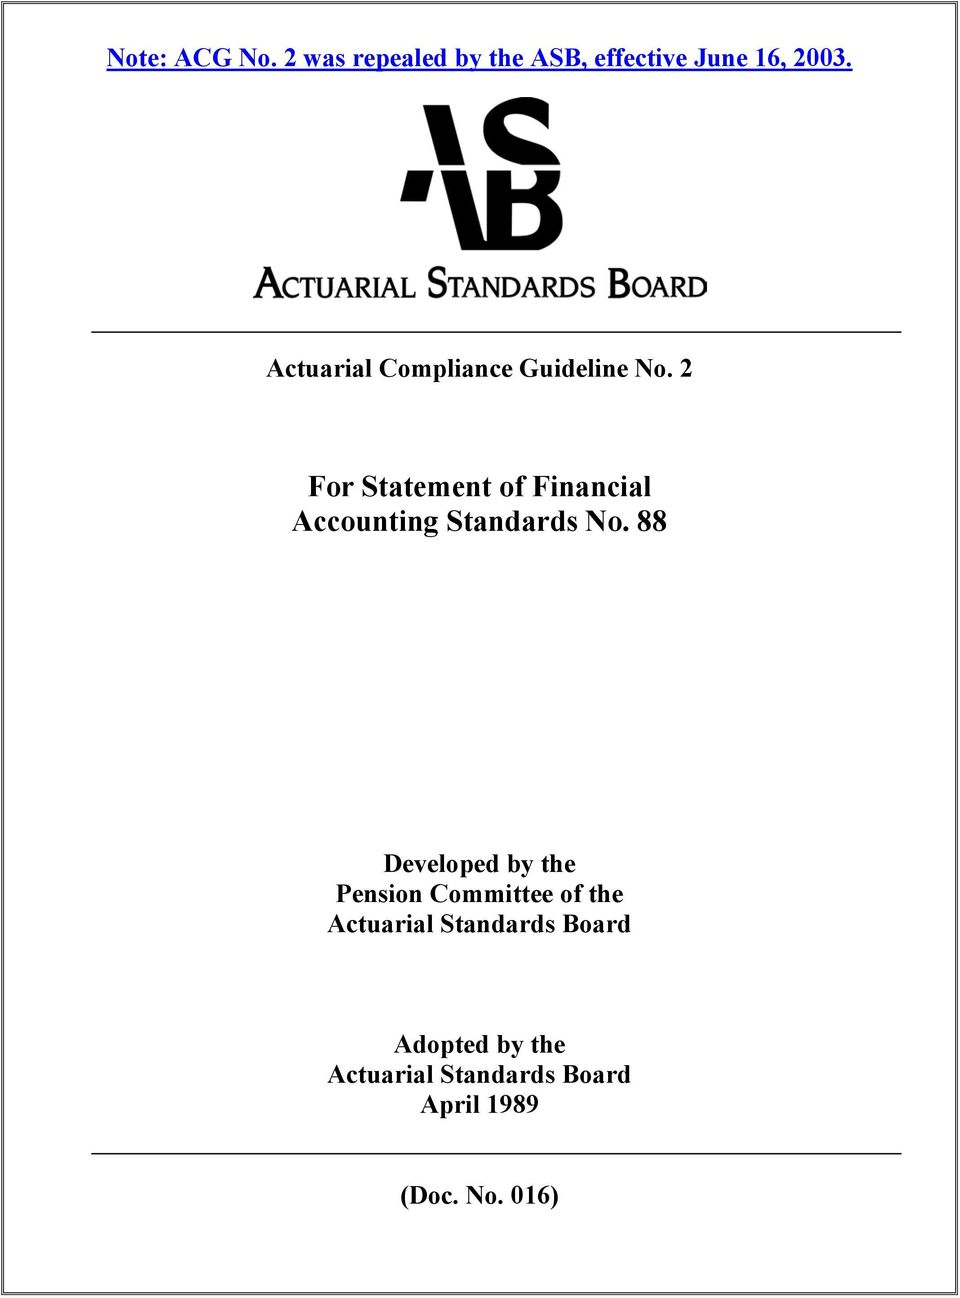 2 For Statement of Financial Accounting Standards No.